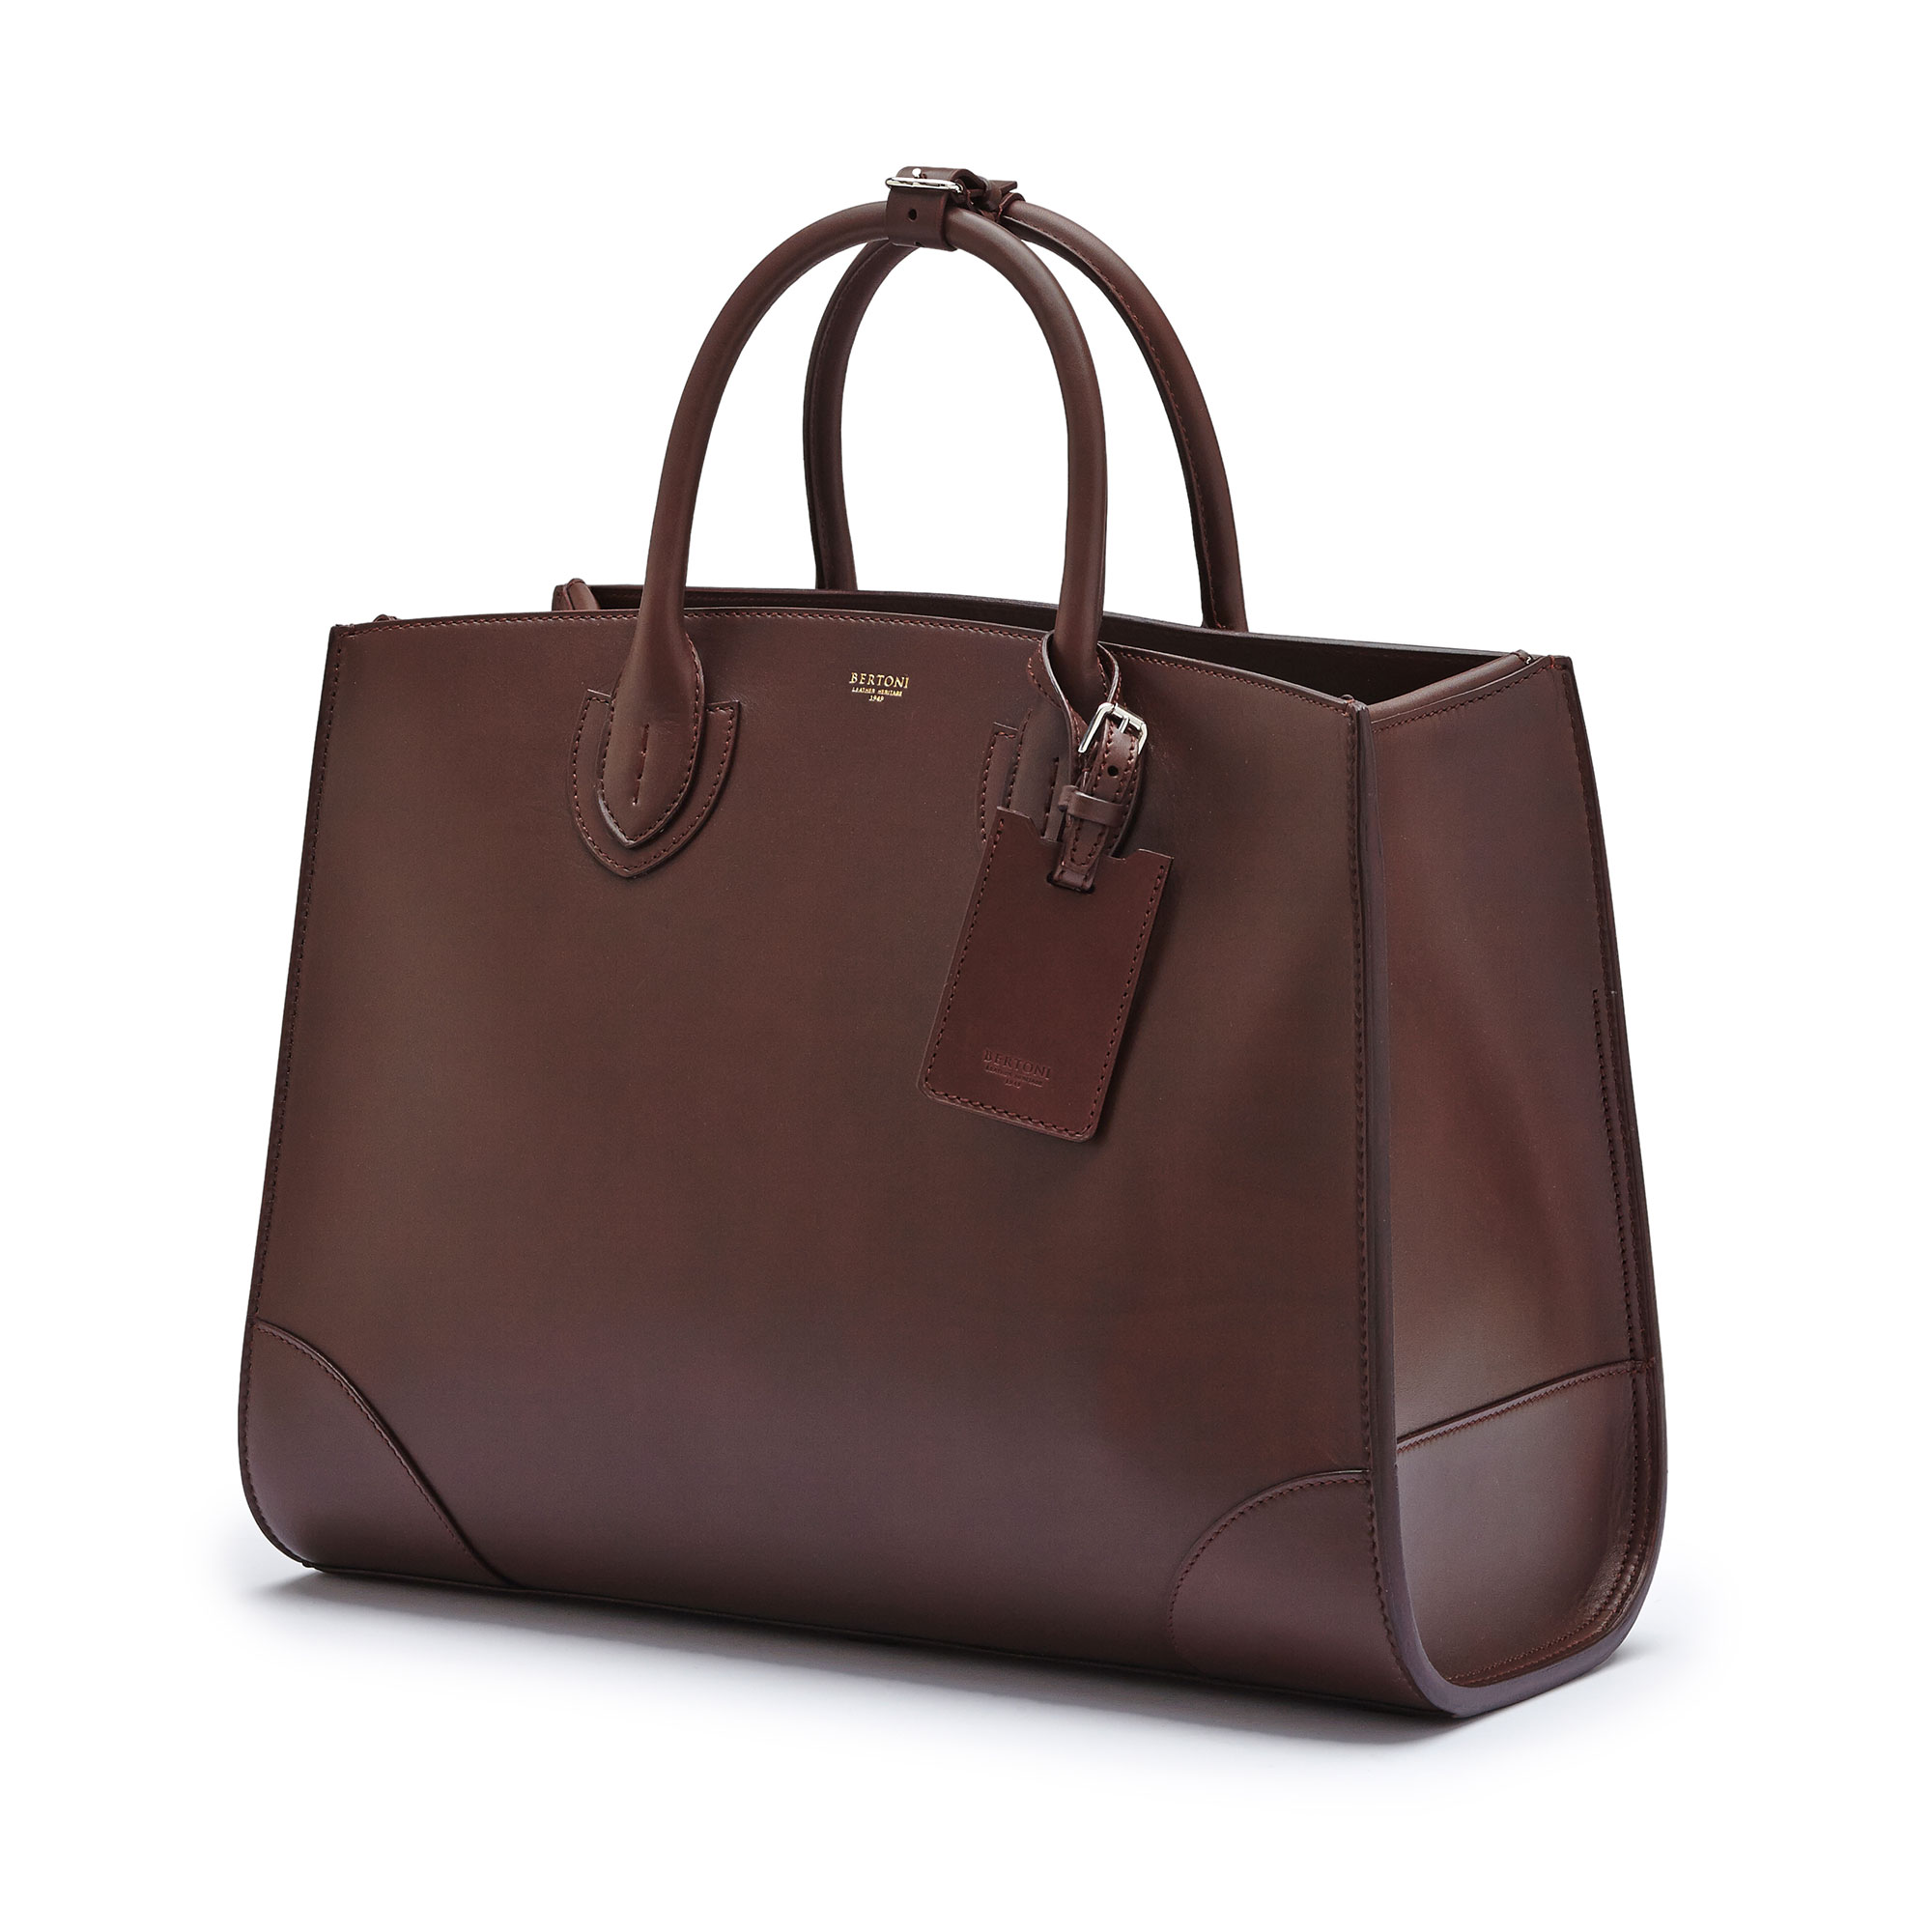 The bordeaux french calf Maxi Darcy bag by Bertoni 1949 03